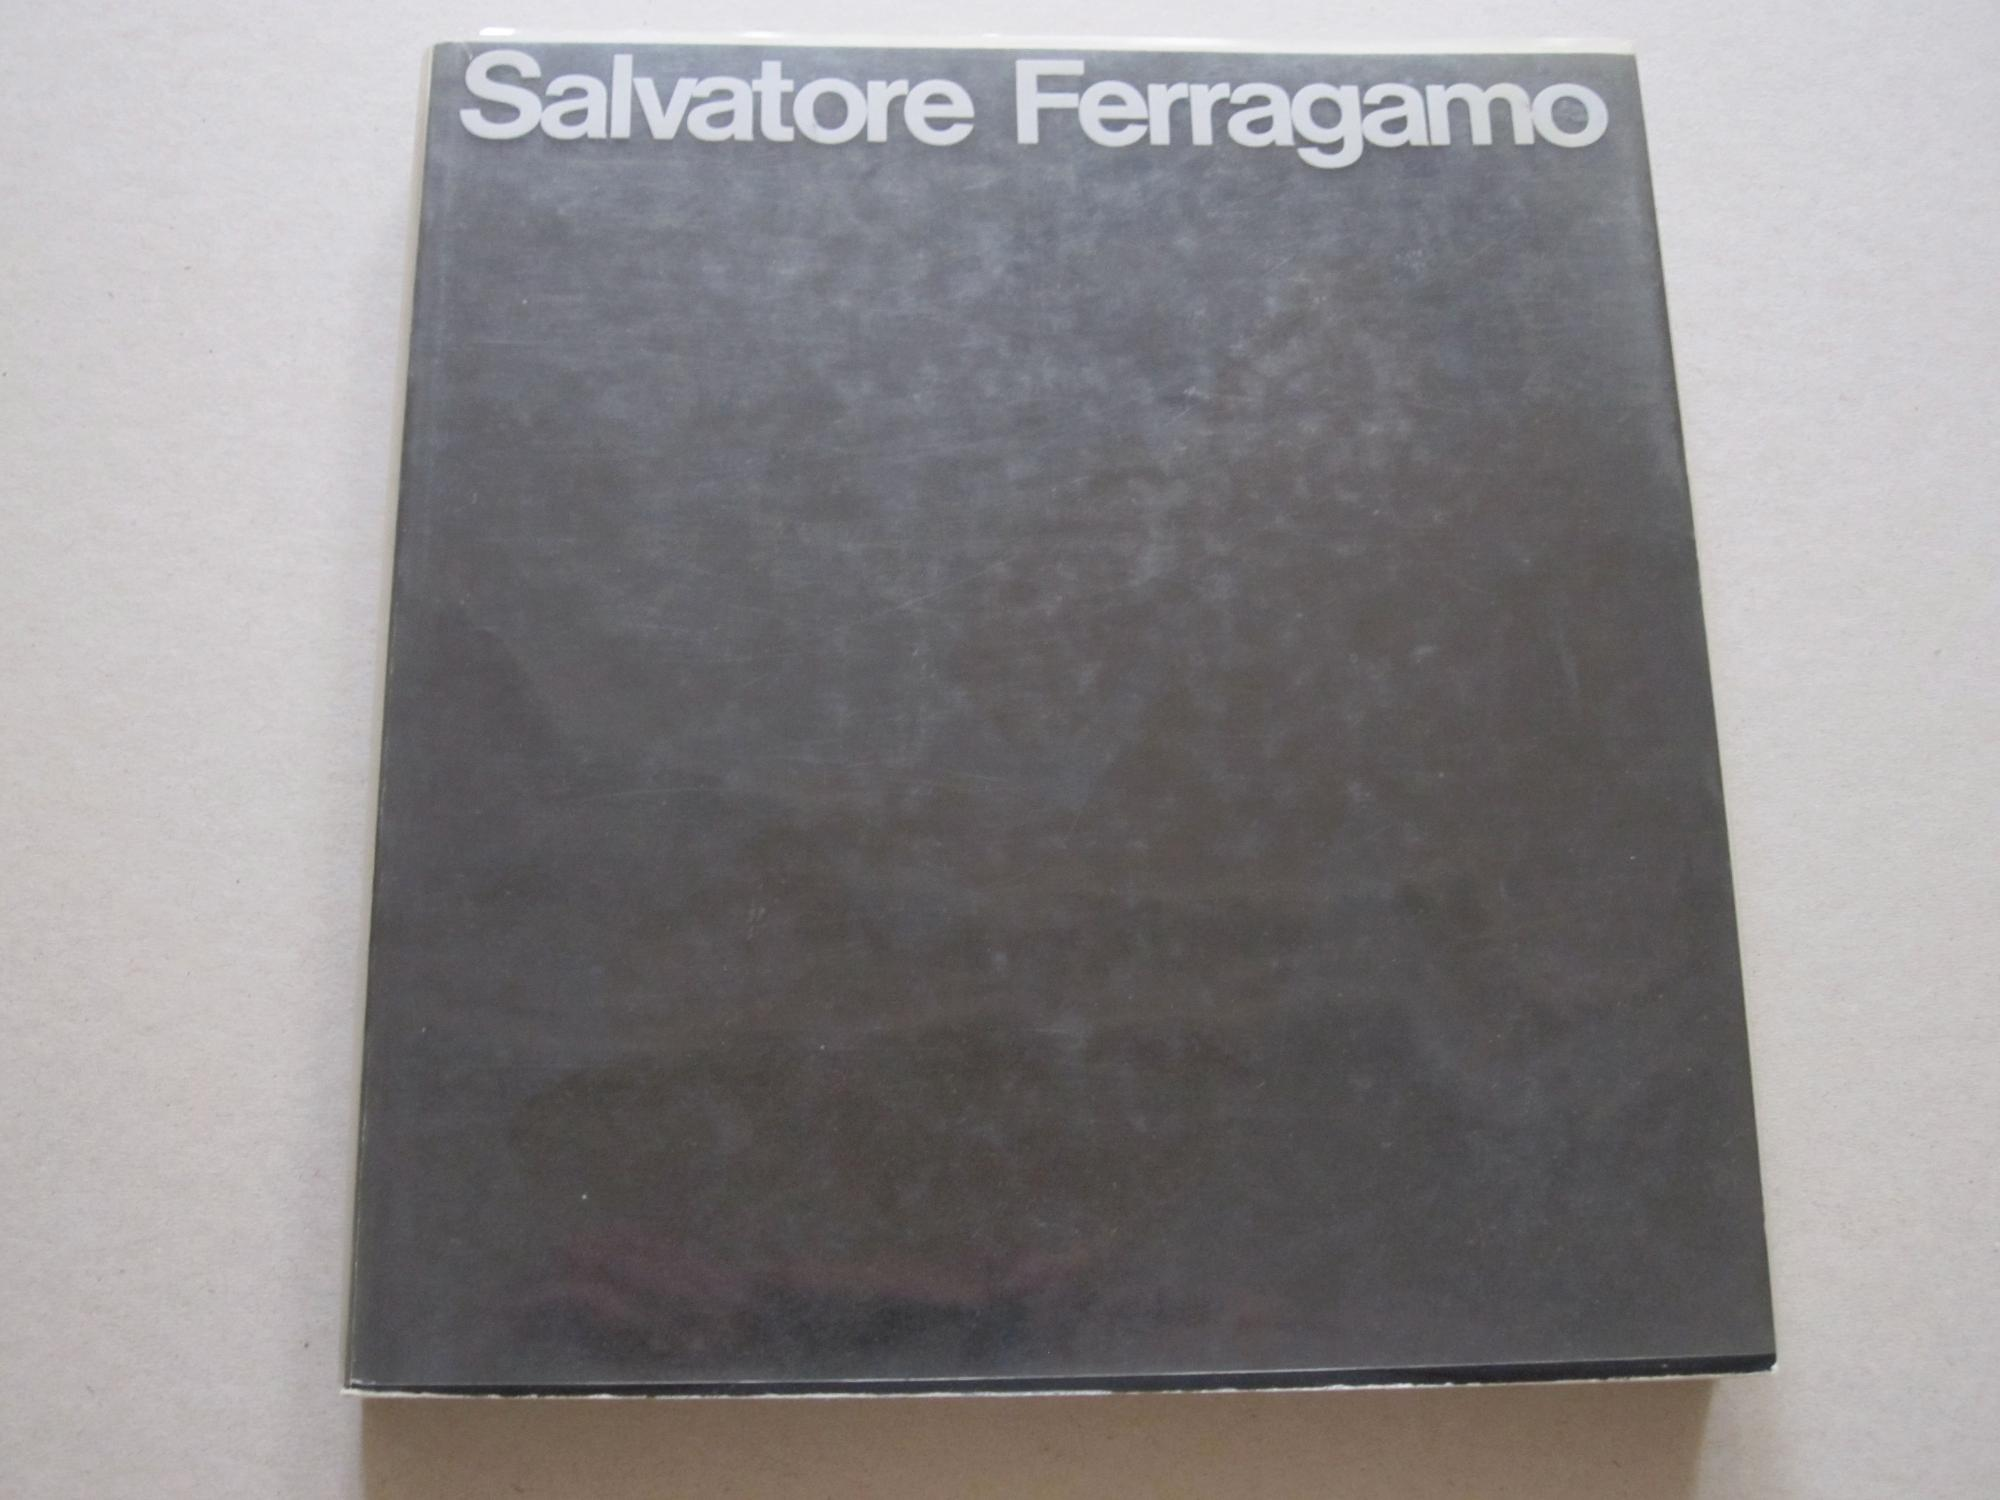 Salvatore Ferragamo (1898-1960) - I protagonisti della moda / Leaders of Fashion Salvatore Ferragamo Hardcover Exhibition catalogue. Text in italian and english, small 4to, wrappers with acetate dj, 263 pages, illus., vg.